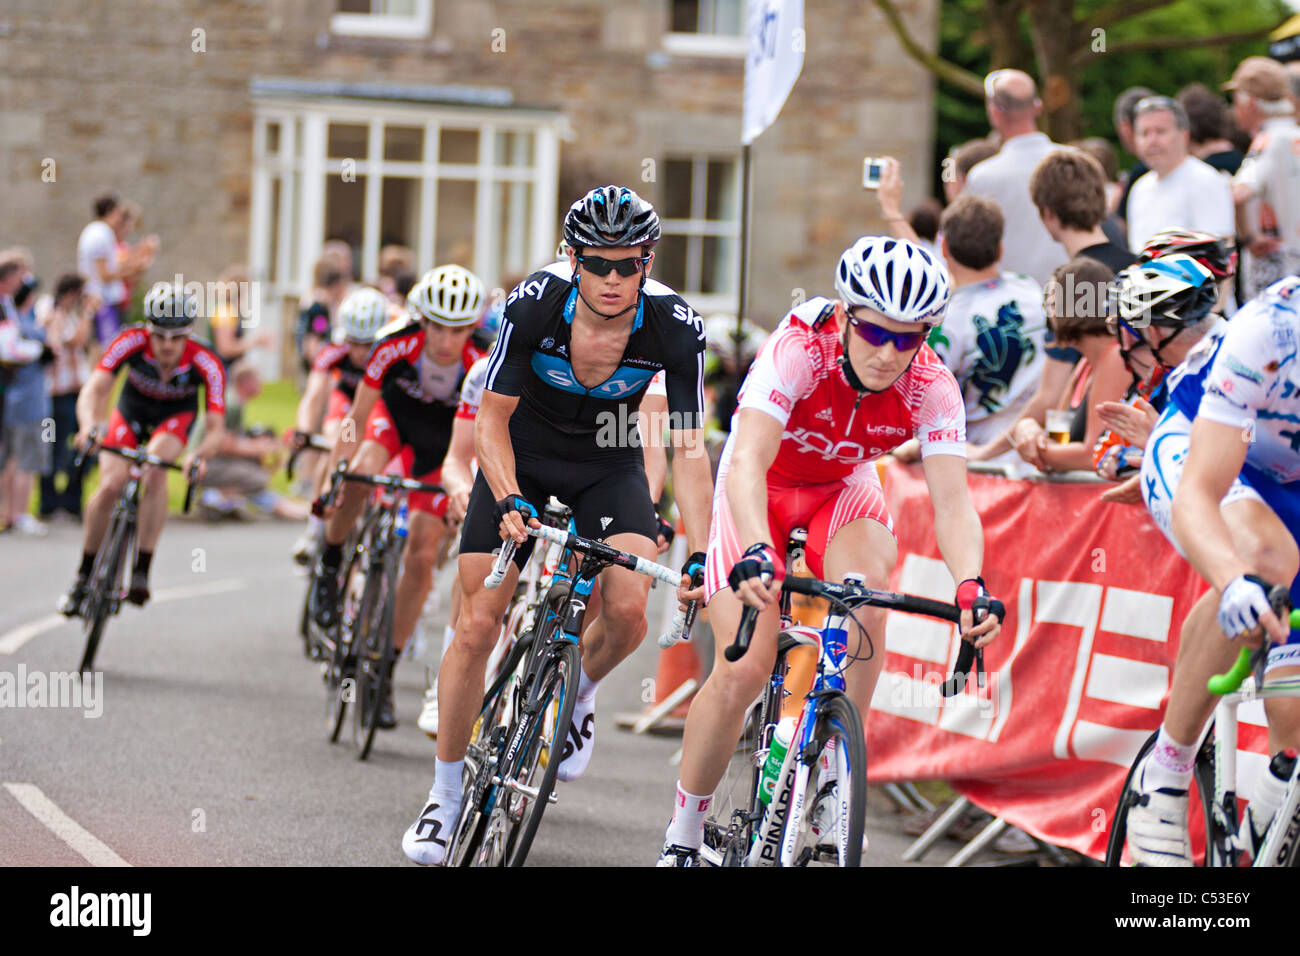 riders passing on the last lap in the 2011 British National Road cycling Championship - Stock Image